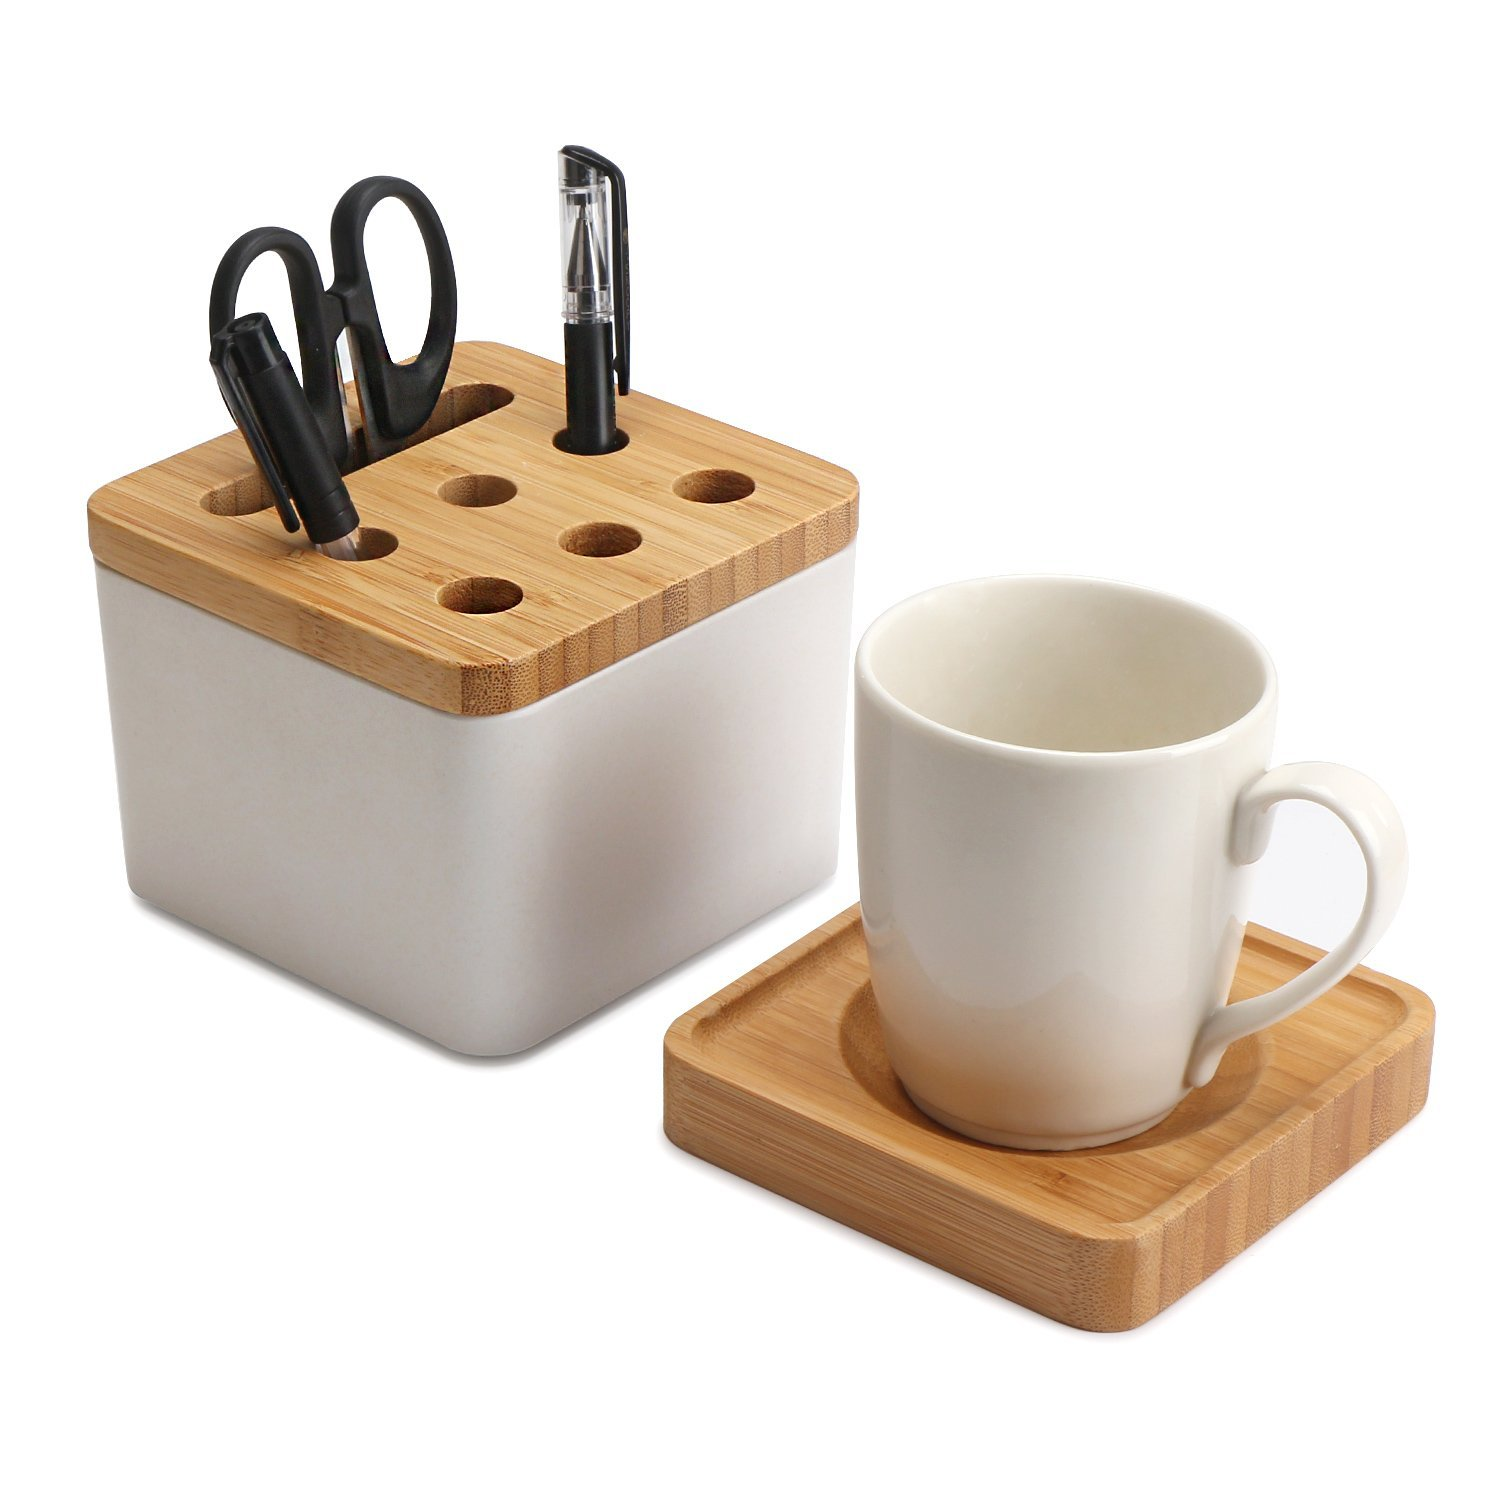 Segarty Pencil Holder, Home Office Multi-purpose Desk Organizer with Bottom Drink Saucer, Desktop Stationery Storage Container, Noble Quality